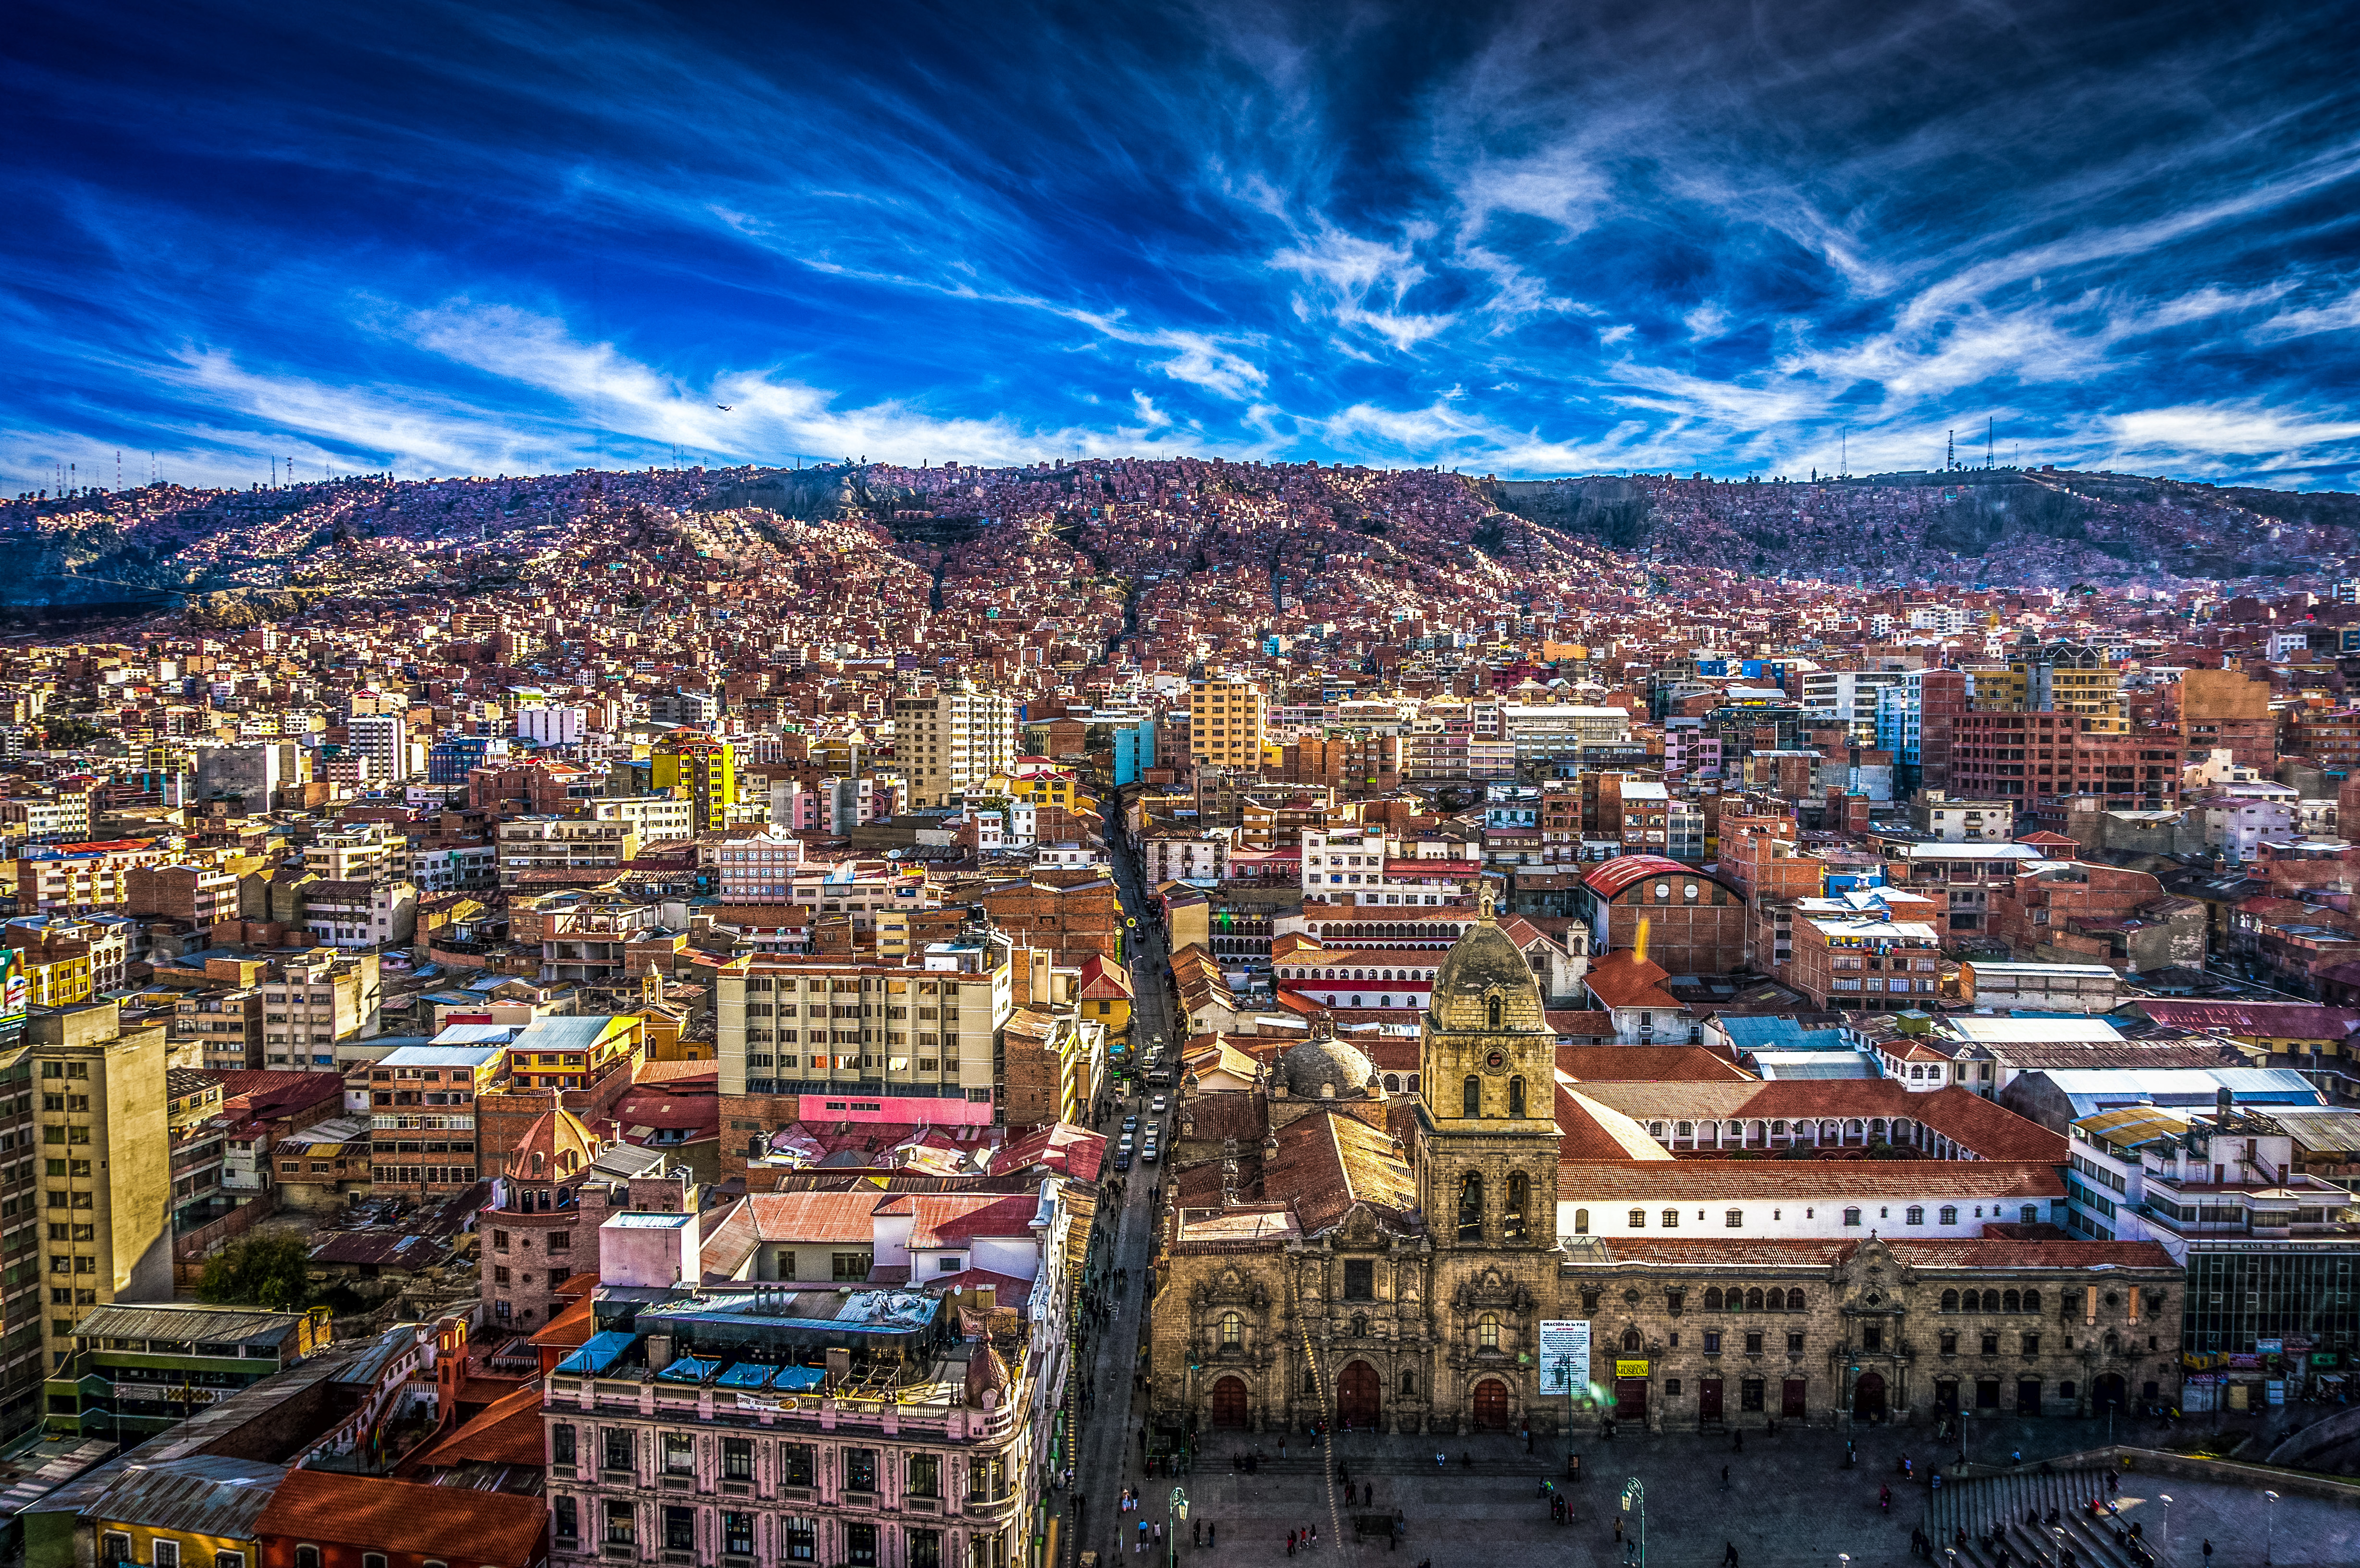 La paz city in bolivia thousand wonders for Is la a city